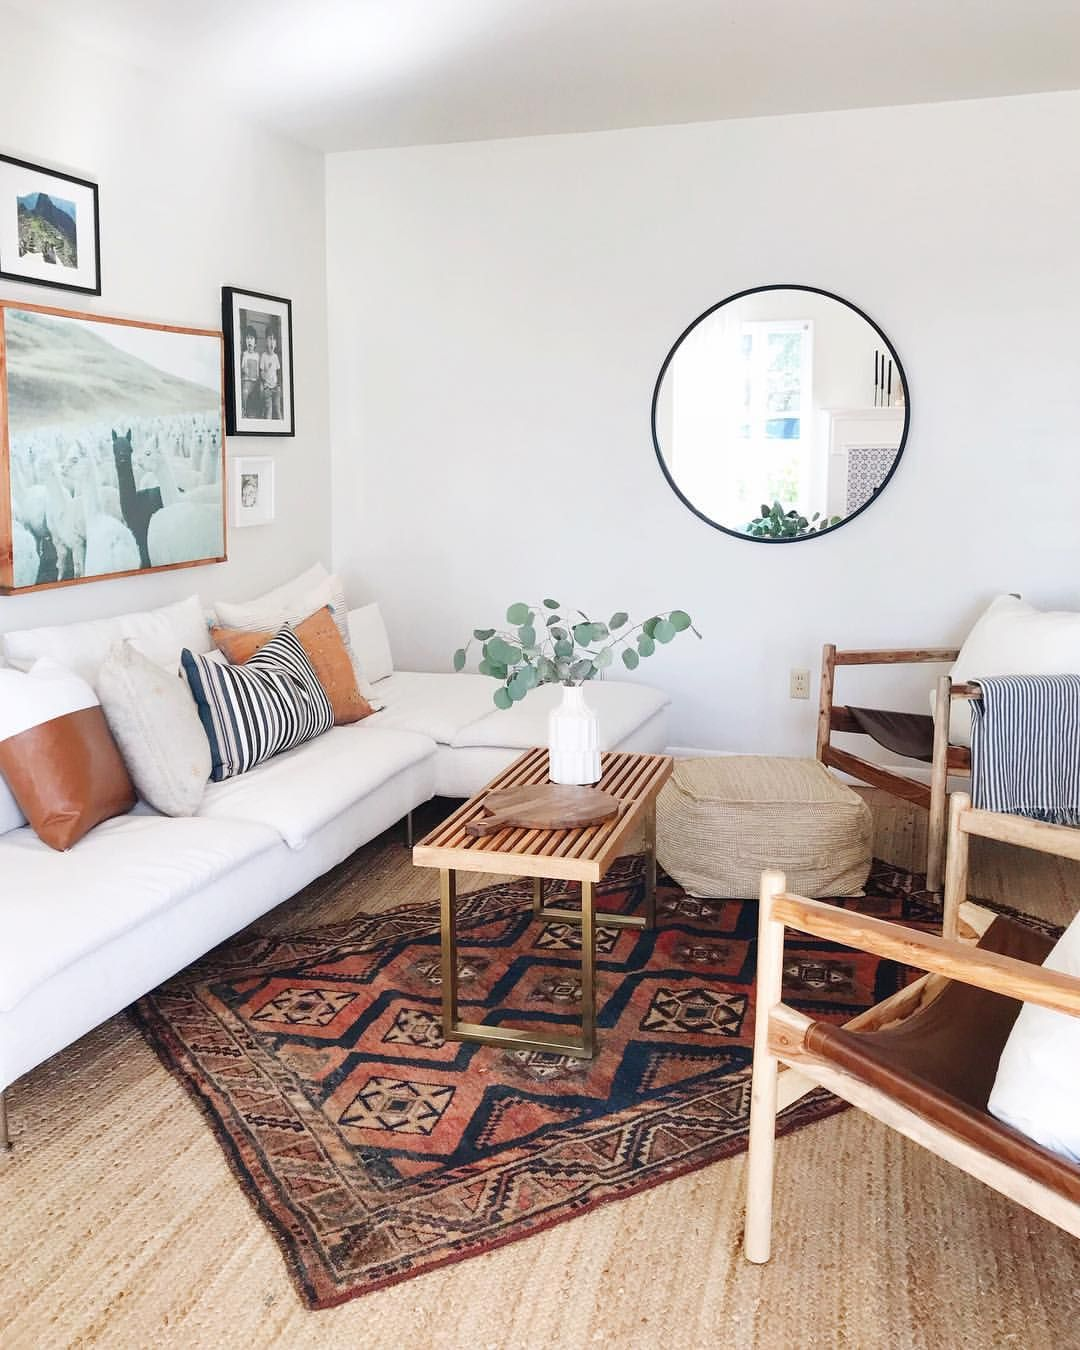 Style Tip If The Rug Is To Small For The Space You Want To Put It In Layer It Angled New Rug Coll Home Decor Interior Design Living Room Warm Interior